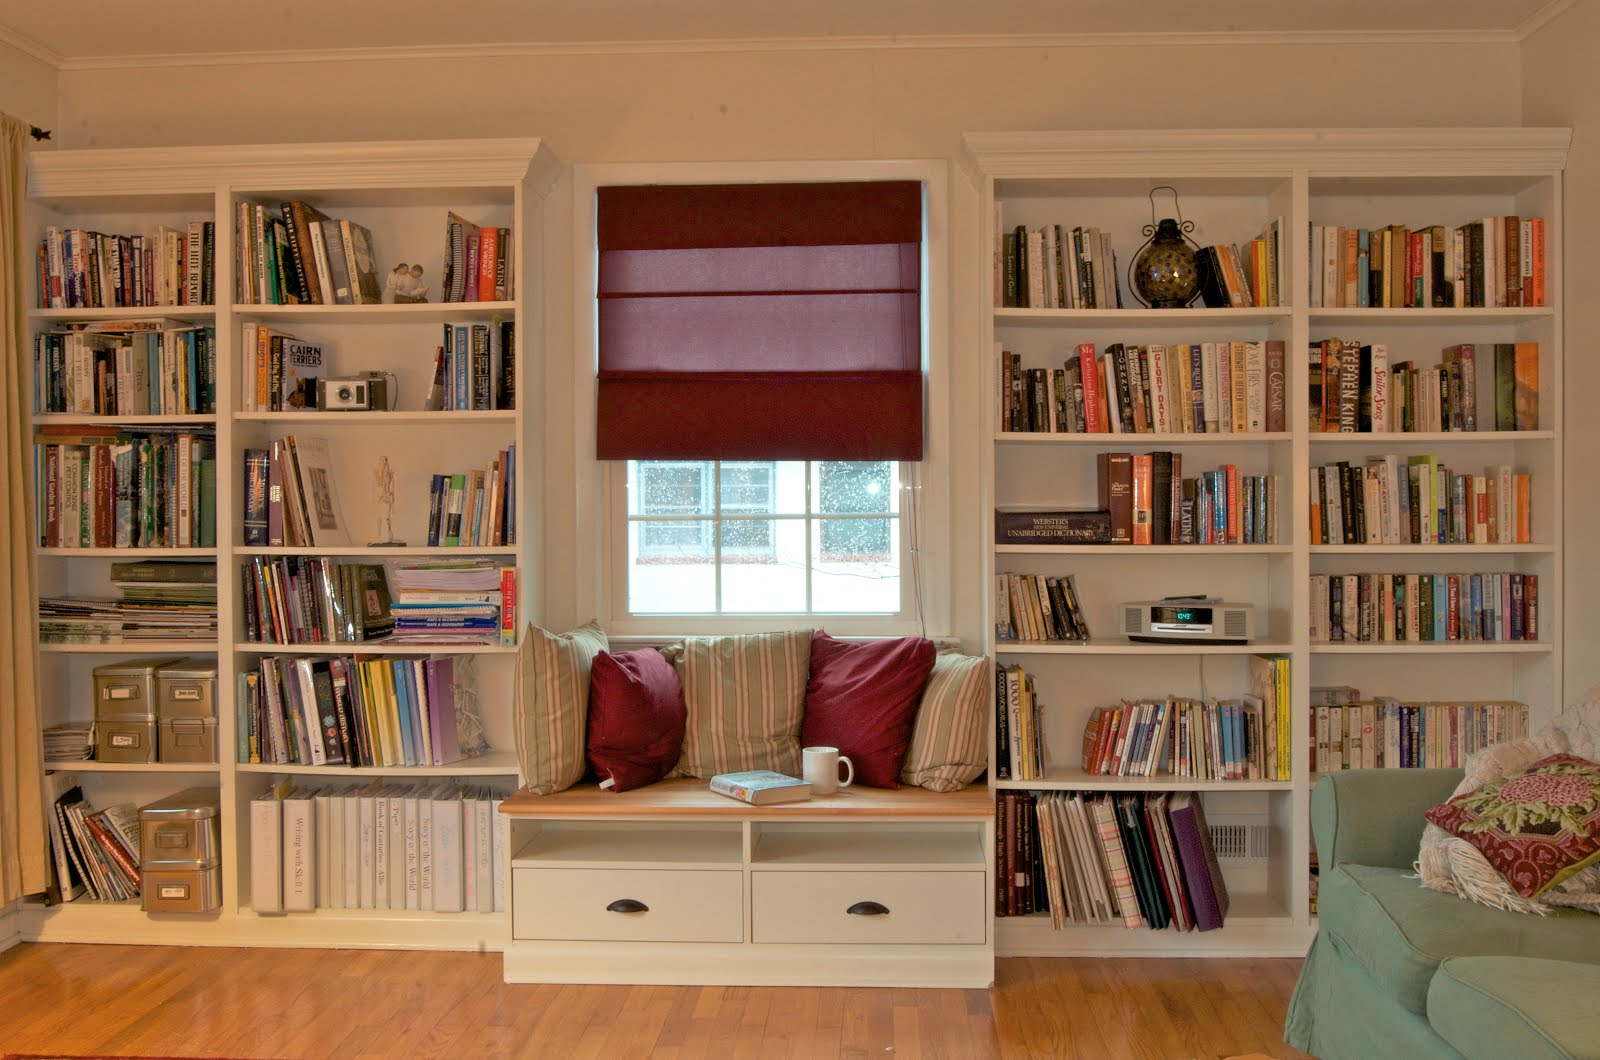 Attrayant Symmetrical Built In Bookshelves In Floor To Ceiling Design With Window And  Seating Between Them